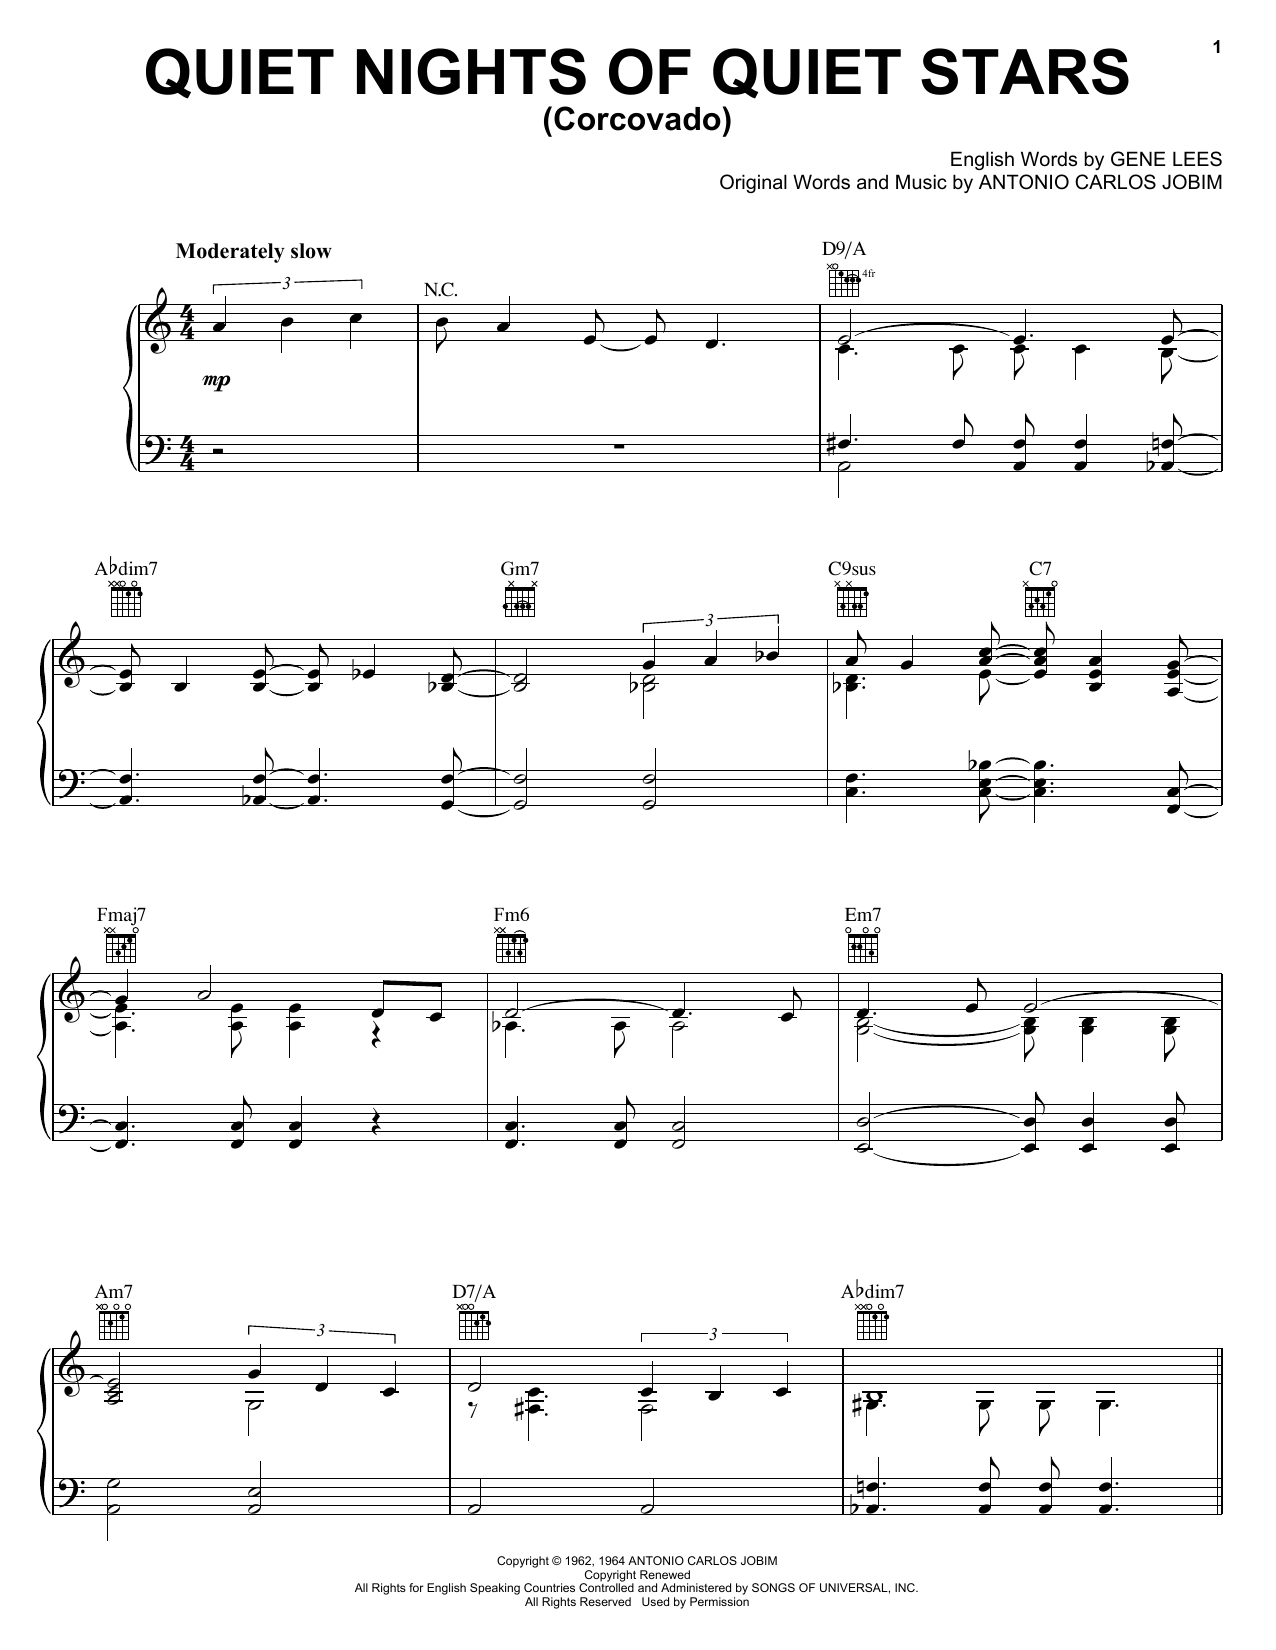 Antonio Carlos Jobim Corcovado (Quiet Nights Of Quiet Stars) sheet music notes and chords